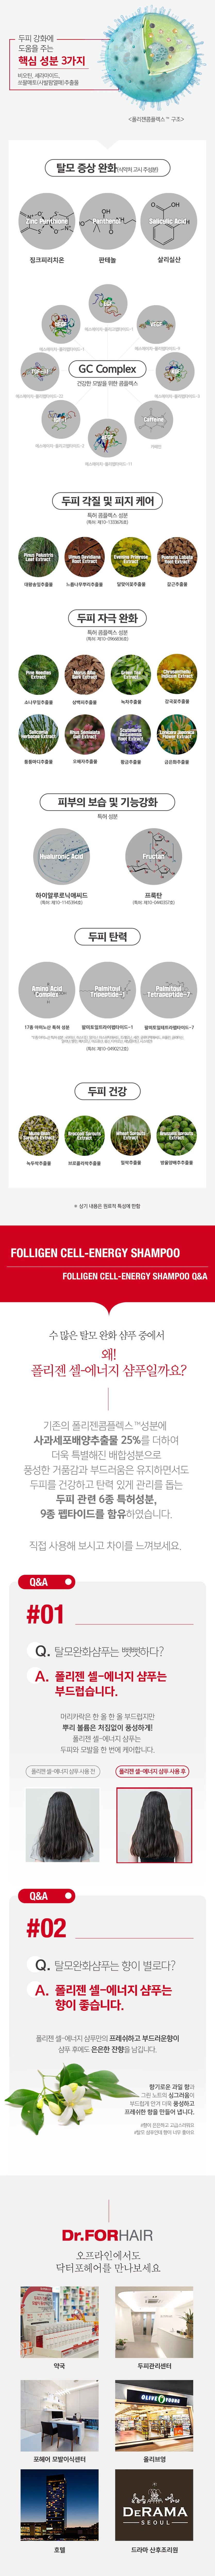 dau-goi-cai-thien-rung-toc-dr-forhair-folligen-cell-energy